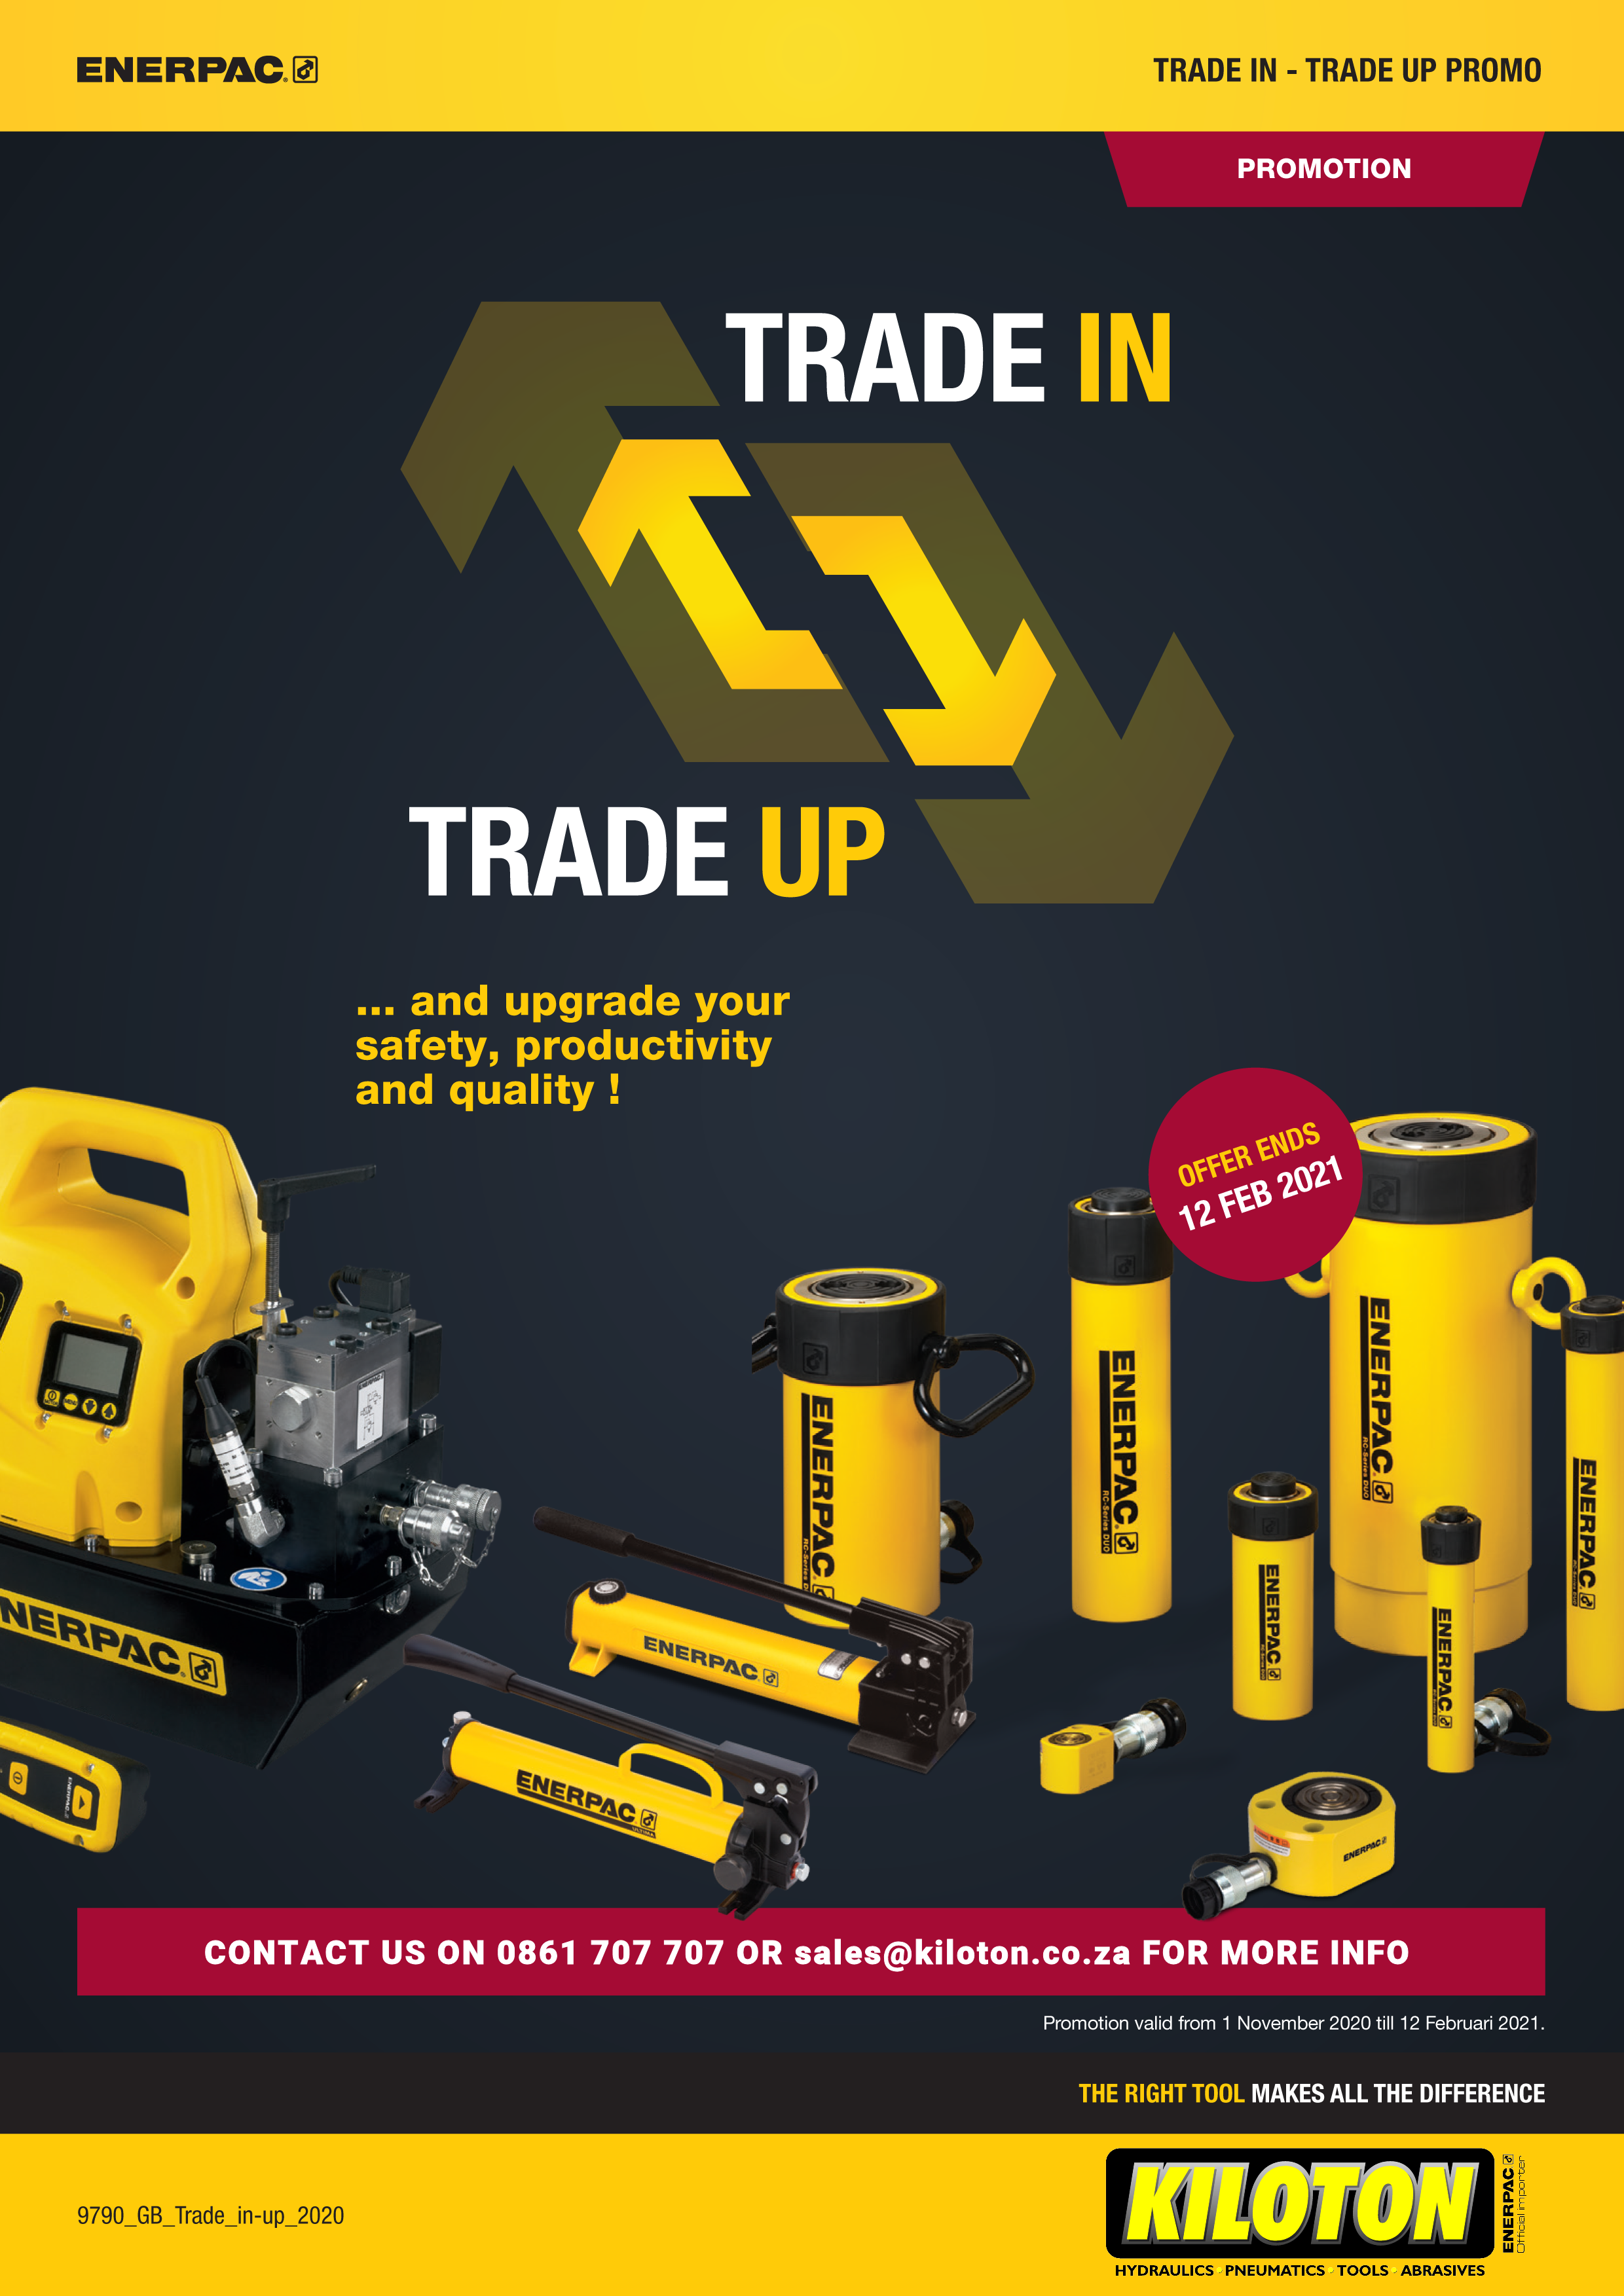 Kiloton Trade In & Trade Up promotion valid until 12 Feb